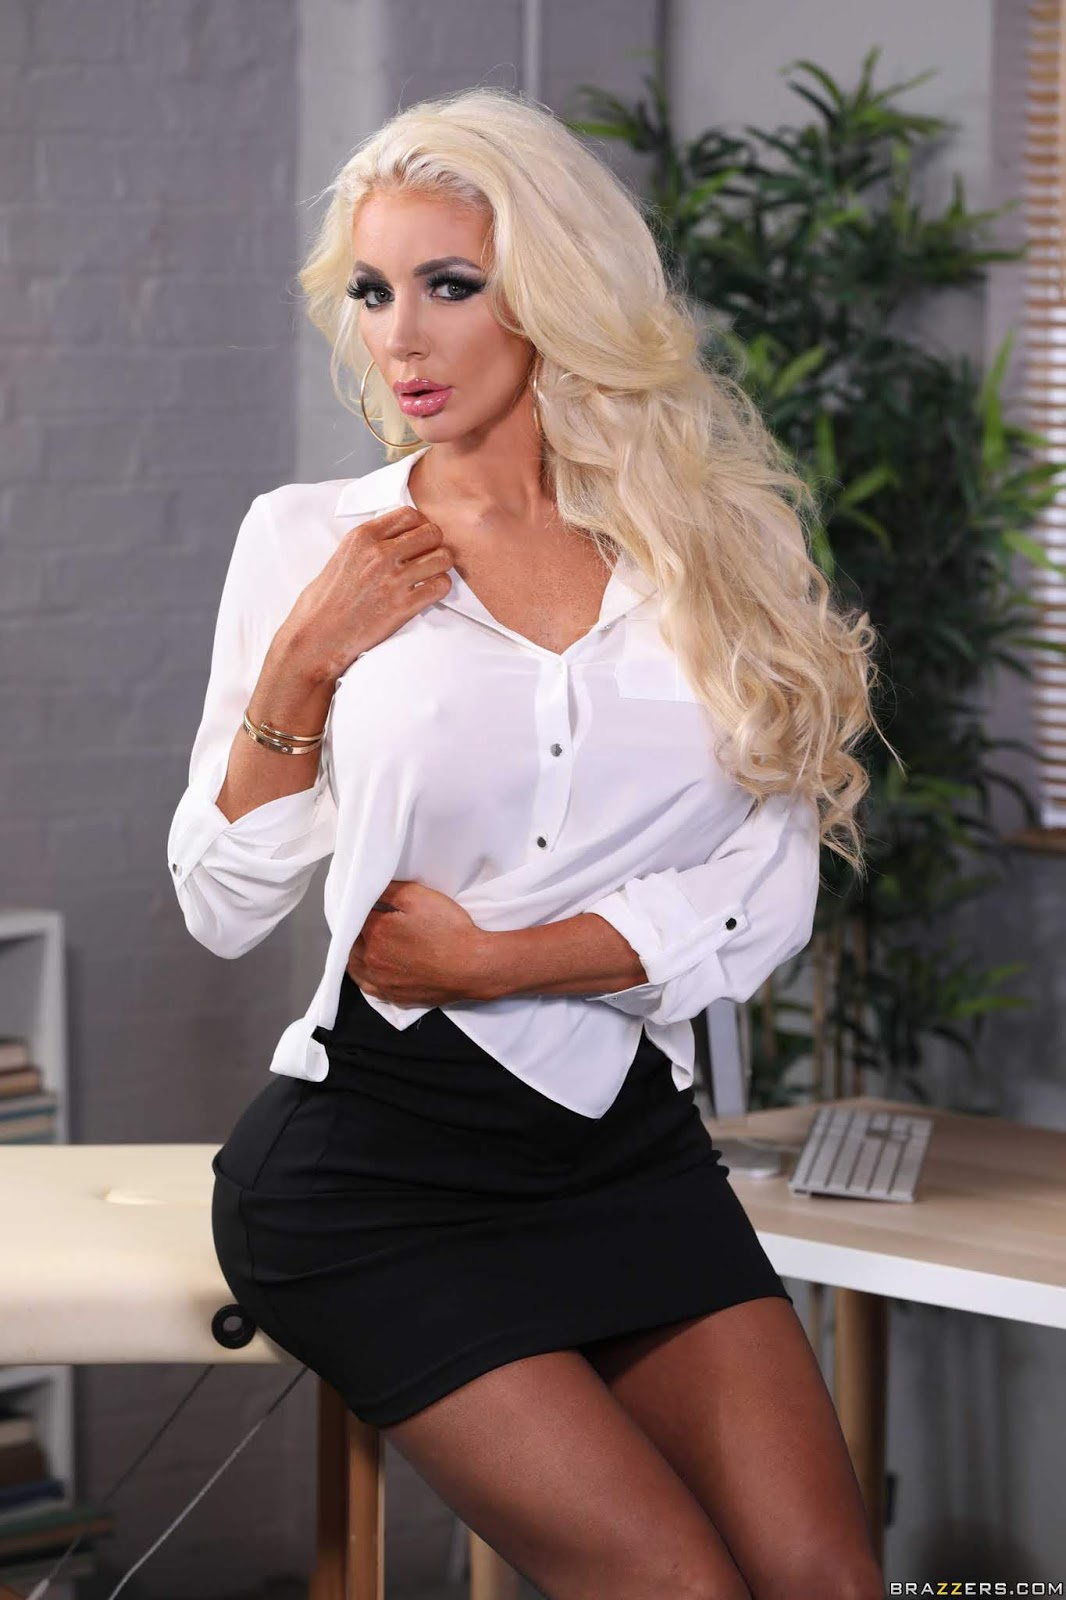 Nicolette-Shea-%3A-Massaged-On-The-Job-%23%23-BRAZZERS-p7aeftwvoq.jpg